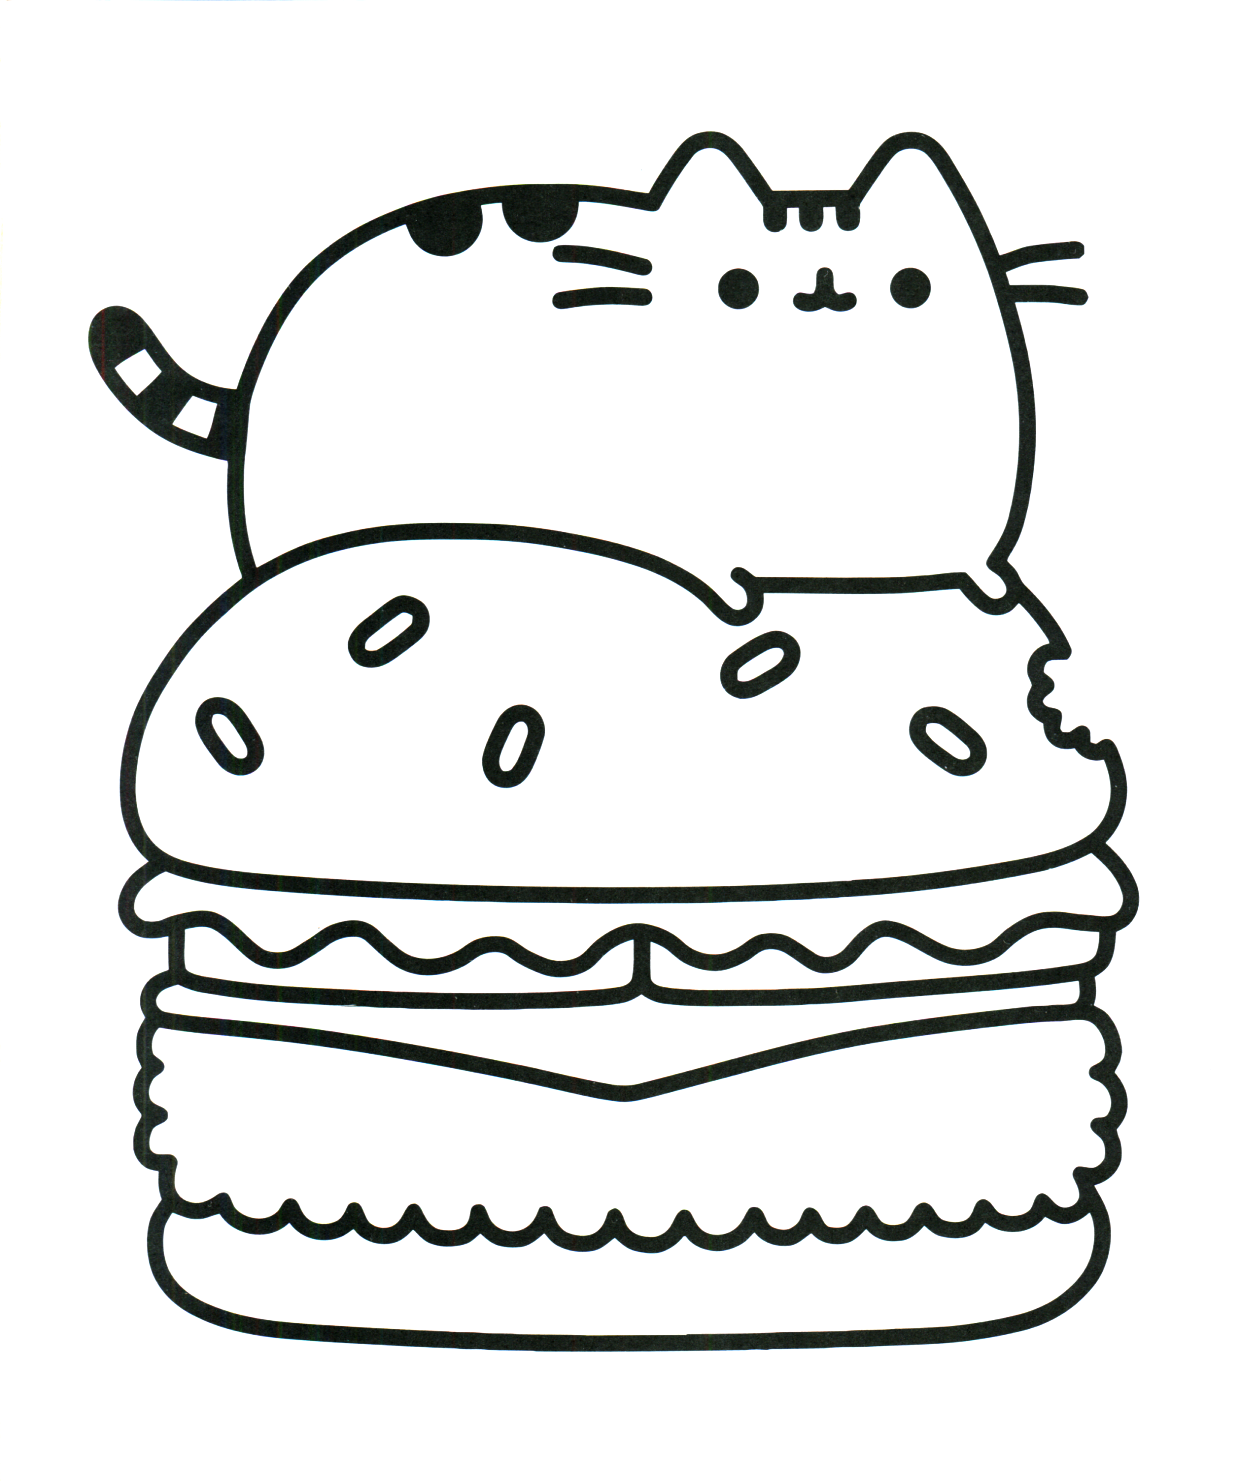 Pusheen Coloring Book Pusheen Pusheen the Cat | pusheen the cat ...